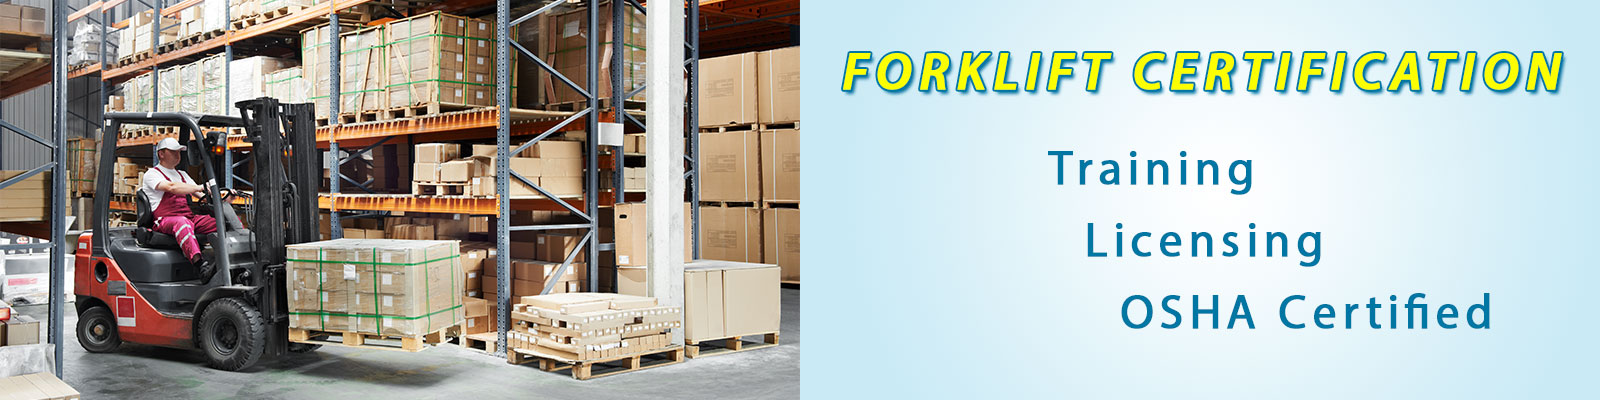 Forklift certification special